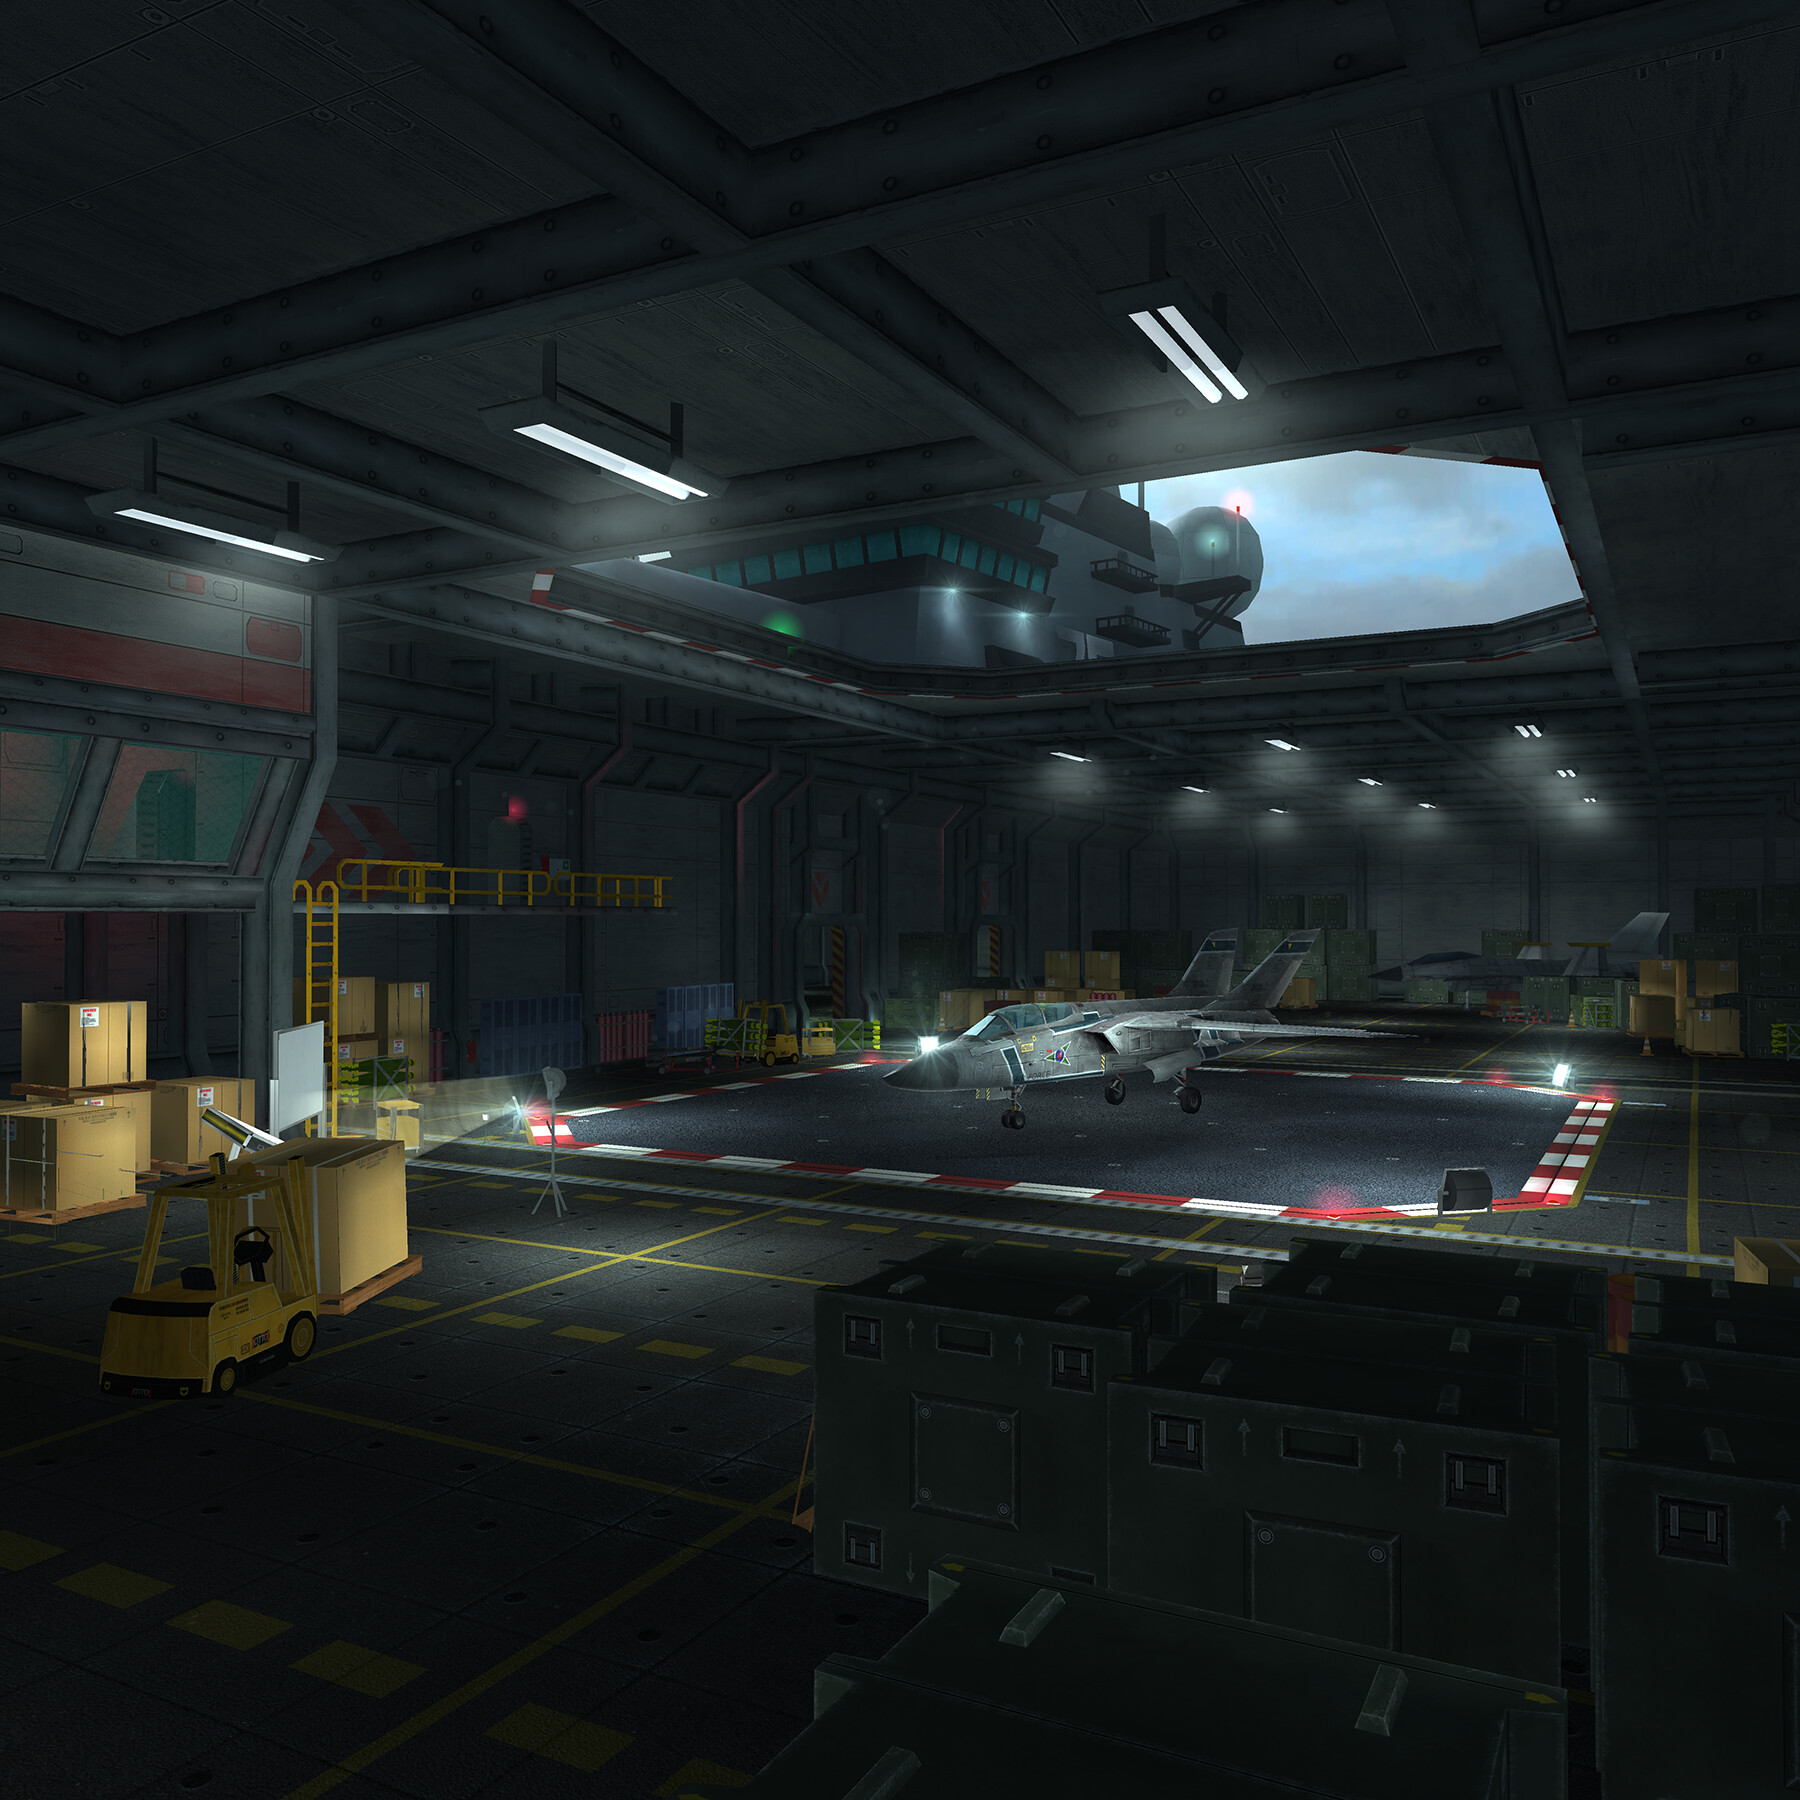 Aircraft Carrier plane selection. The elevator was used to load and unload planes into the scene for player aircraft select. Once selected the plane would rise seamlessly to top deck for takeoff.